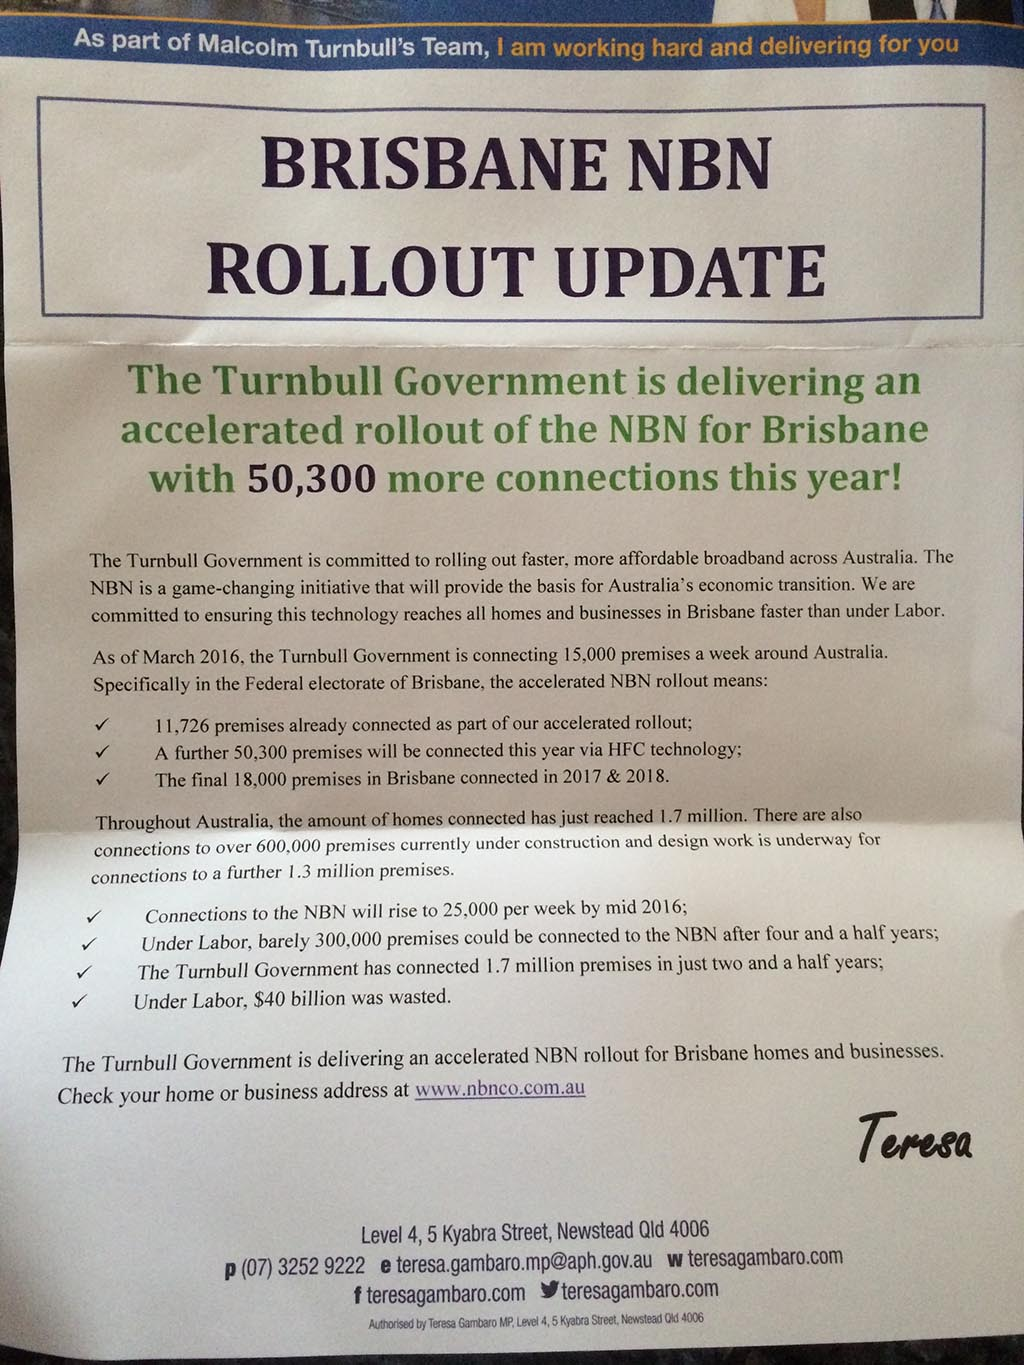 40bn Waste Coalition Kicks Off Nbn Smear Campaign Delimiter